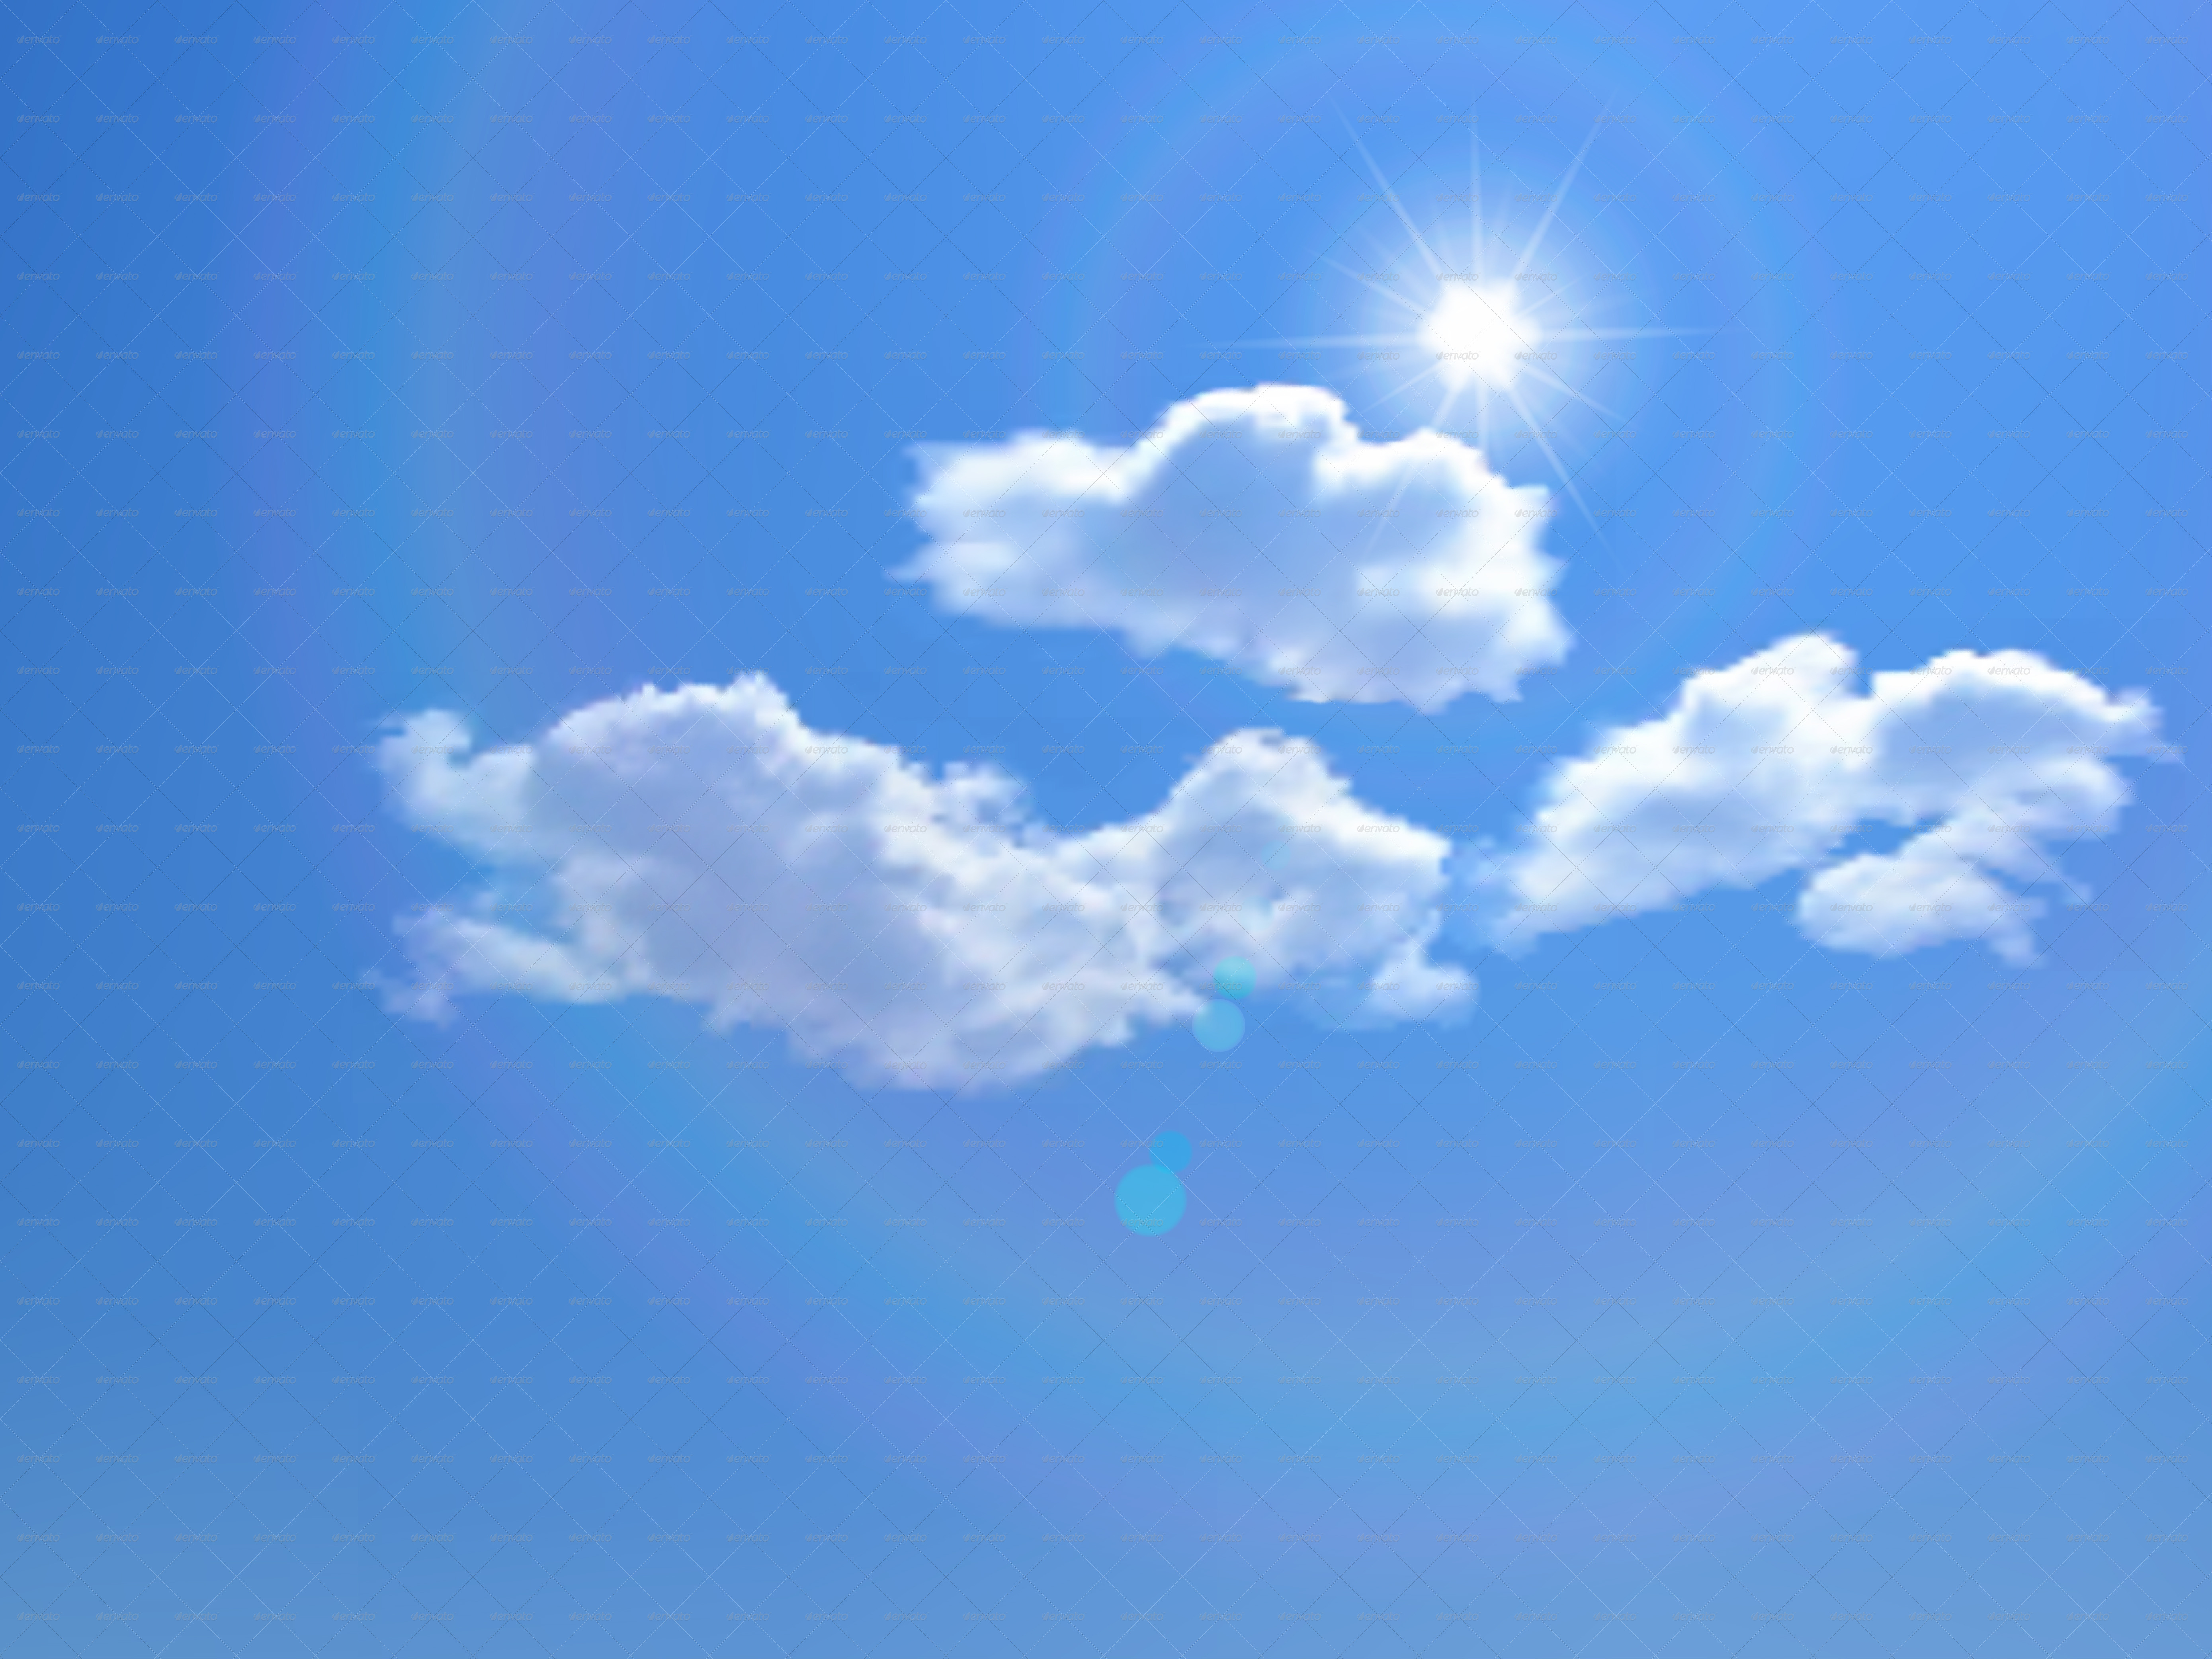 Sky Backgrounds with Clouds and Sun by 31moonlight31